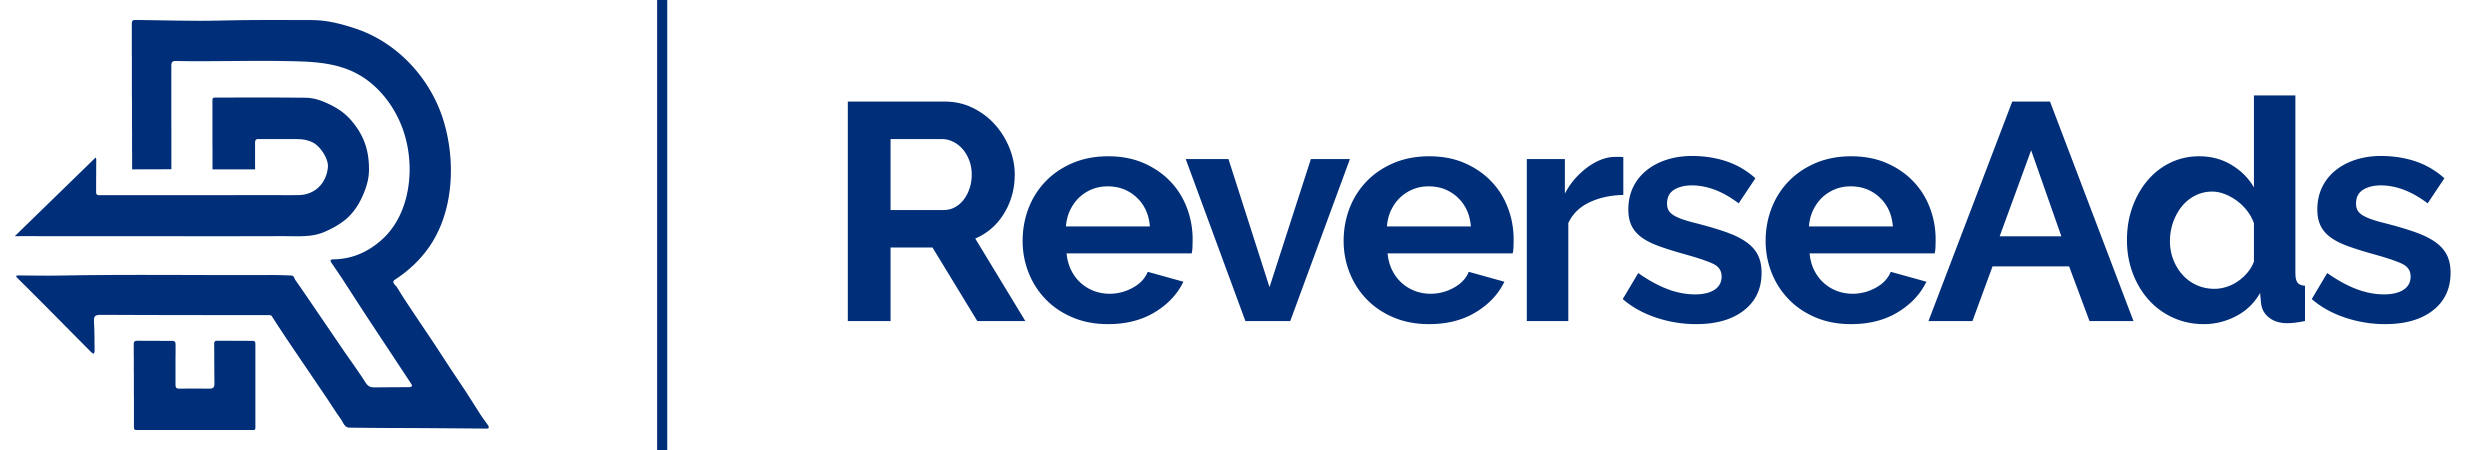 ReverseAds Announces The Launch Of The World's First True Alternative To Search Advertising